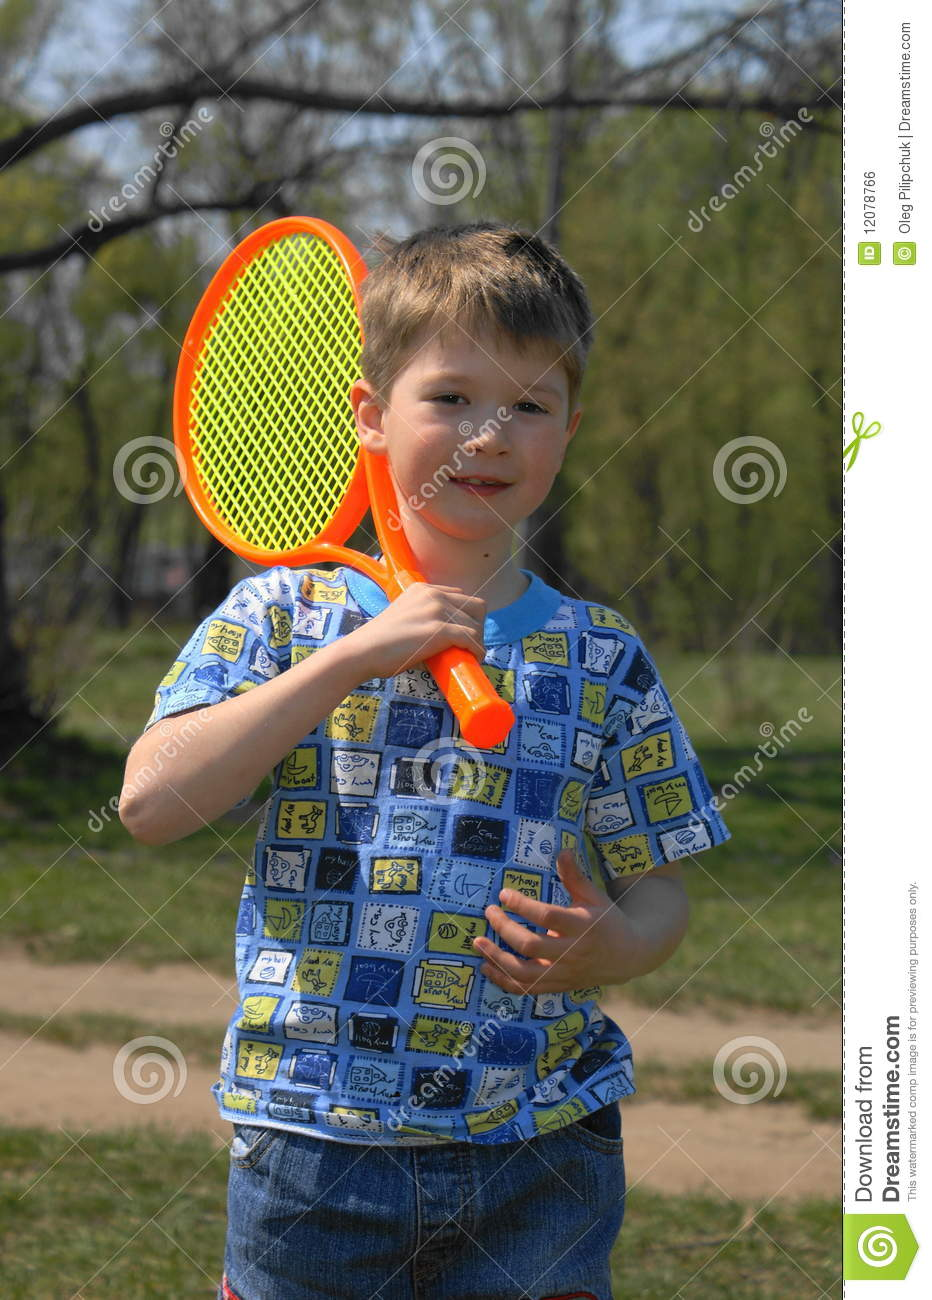 Boy with racket stock photo. Image of boys, cute, hands ...